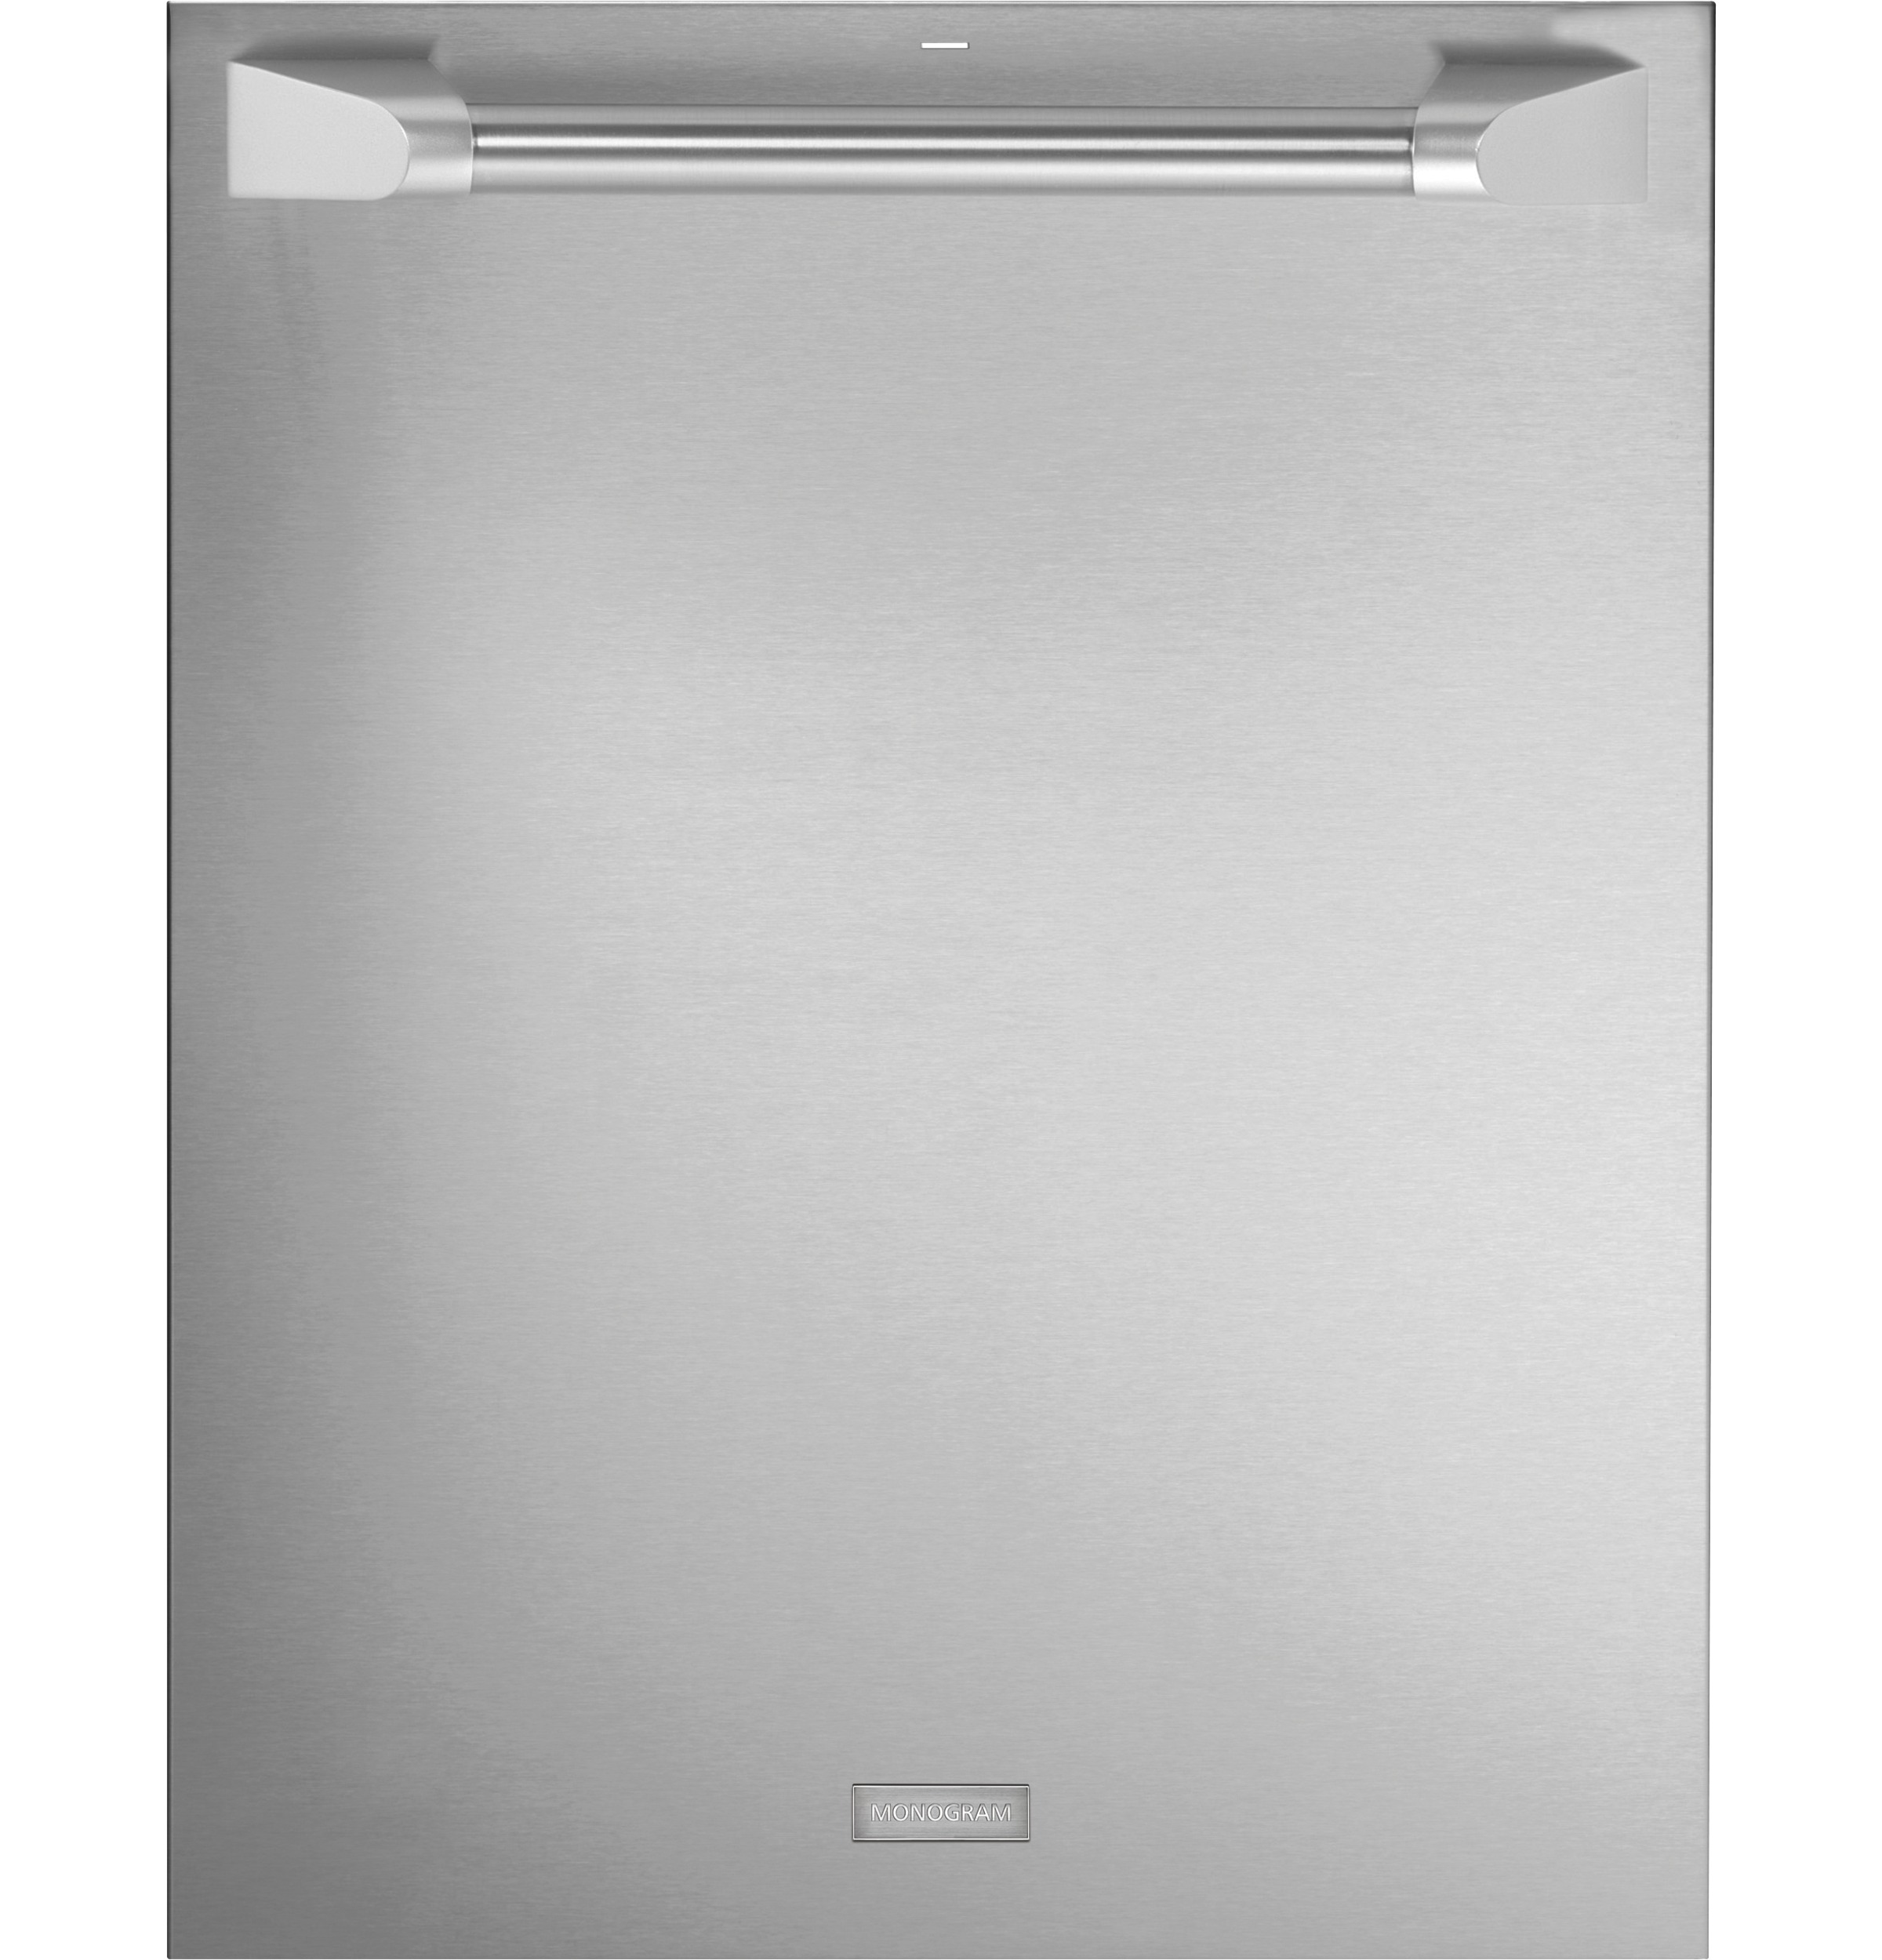 Monogram Monogram Fully Integrated Dishwasher